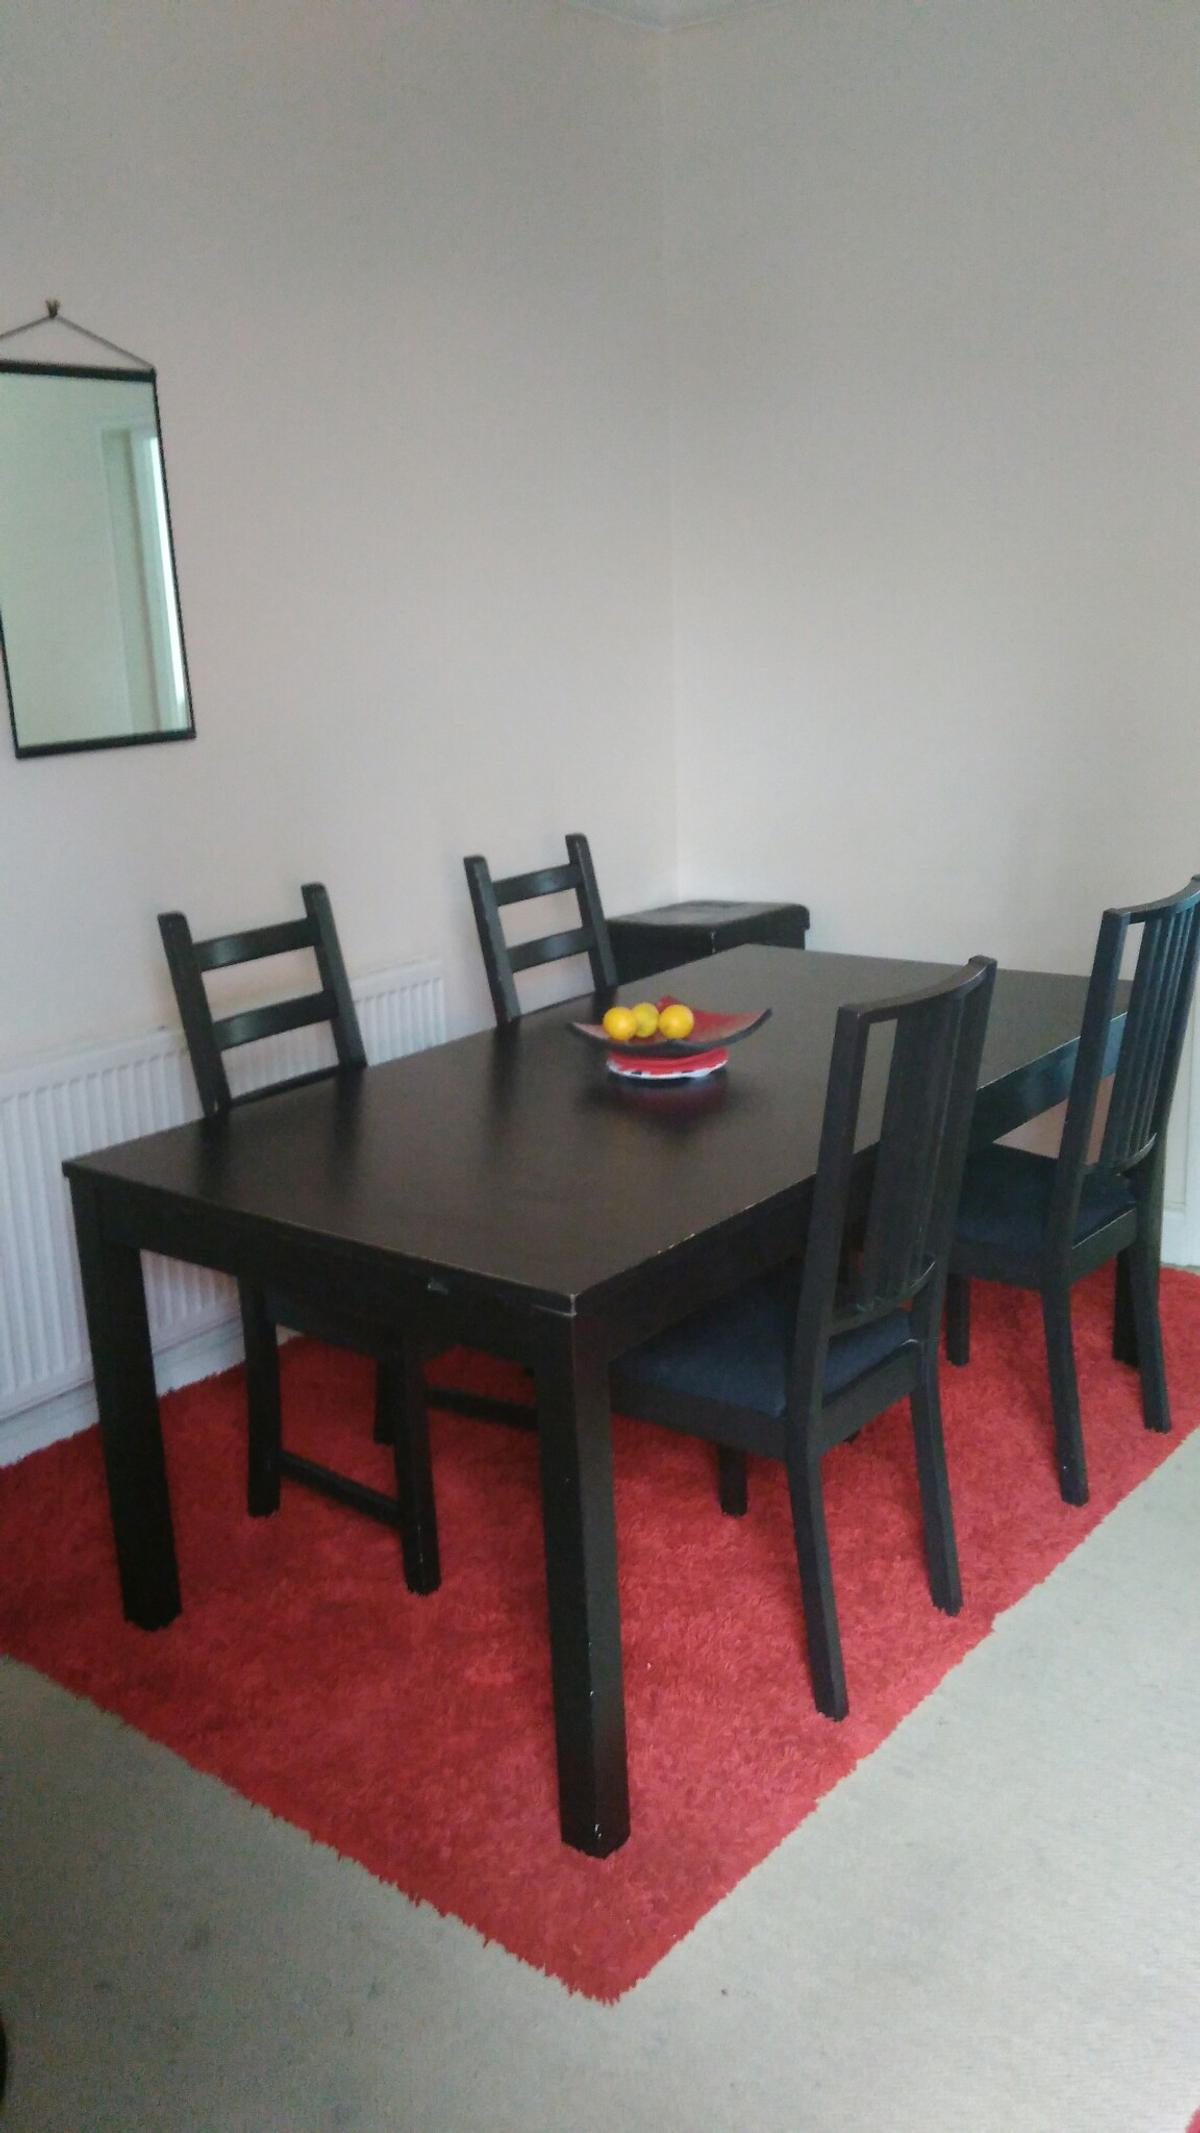 Ikea Bjursta Extendable Table 4 Chairs In Se13 London For 80 00 For Sale Shpock